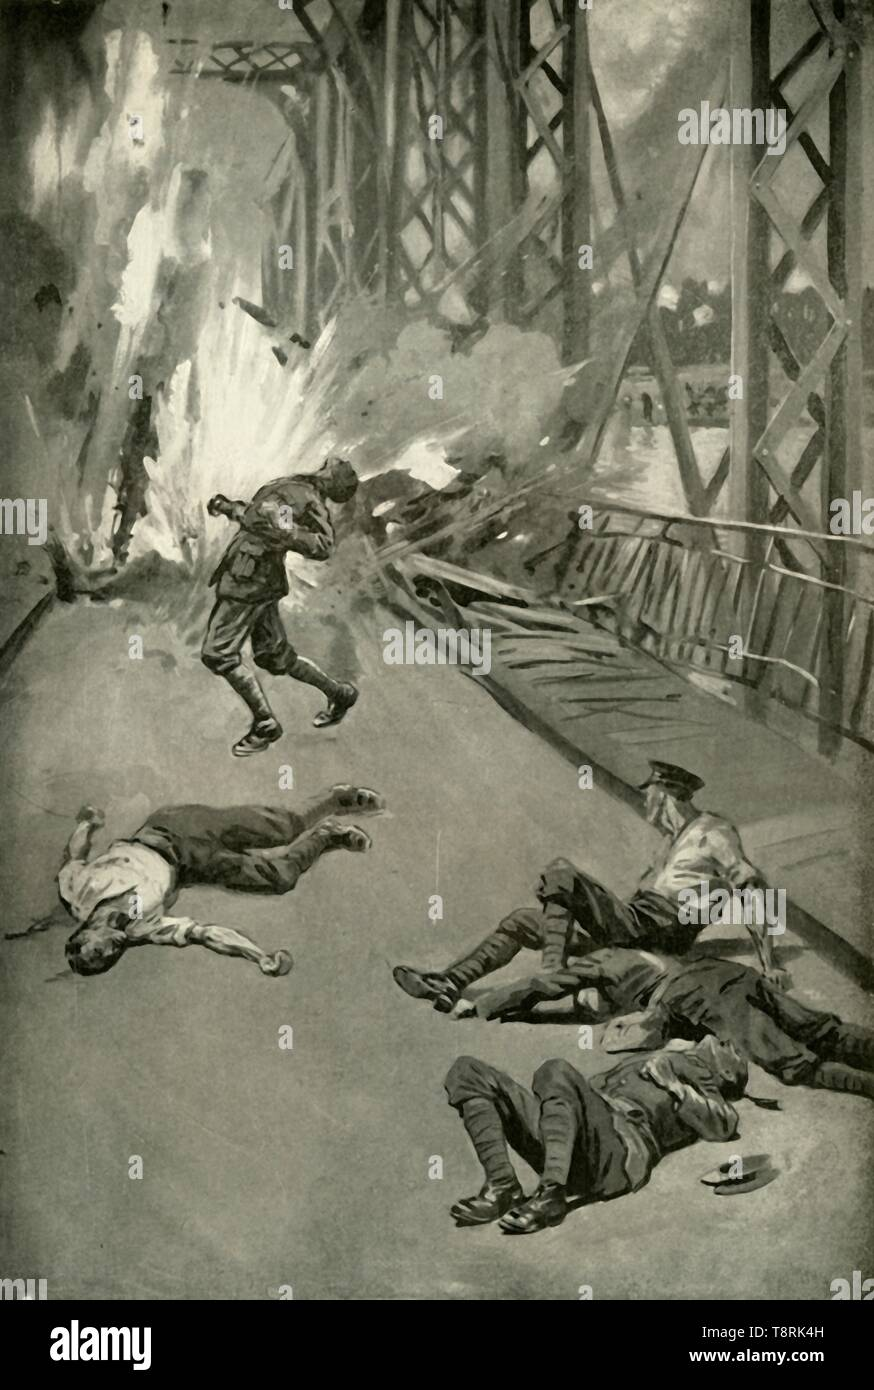 'Blowing Up A Bridge Across the Aisne at Soissons', (1919). Scene from the First World War, 1914-1919: British soldiers destroy a bridge over the River Aisne in northern France. 'Royal Engineers endeavouring to stop the German advance...one by one were killed by the German sharpshooters before they were able to light the fuse. One after another dashed forward to light the fuse; and as one man fell, another rushed to take up the task until the death-toll numbered eleven...the twelfth man, racing across the deadly zone where his comrades lay, lit the fuse - but the hero fell dead beside his gall - Stock Image